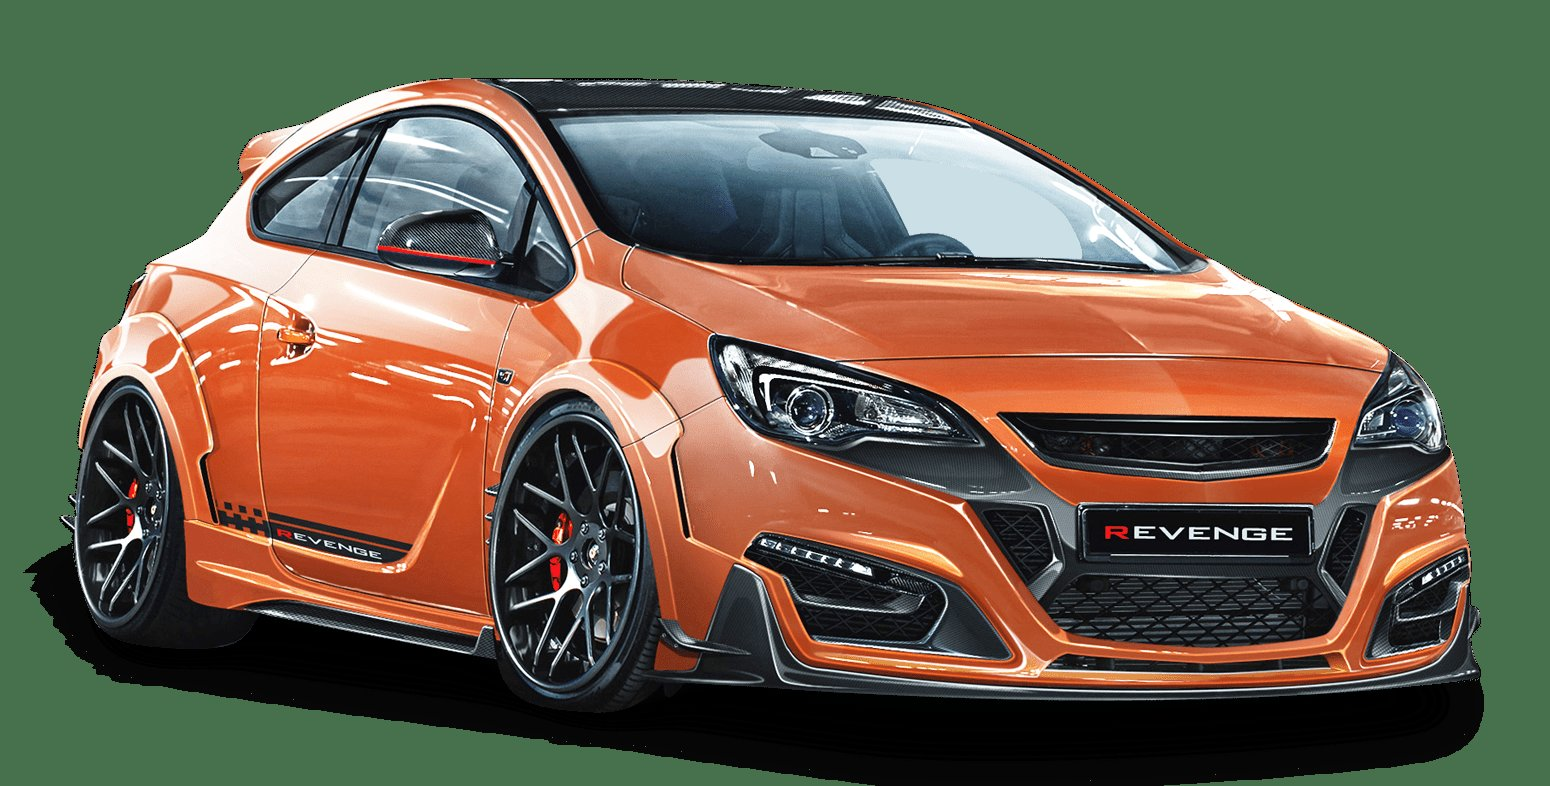 New Opel Astra Gtc Revenge Orange Car Png Image Pngpix On This Month